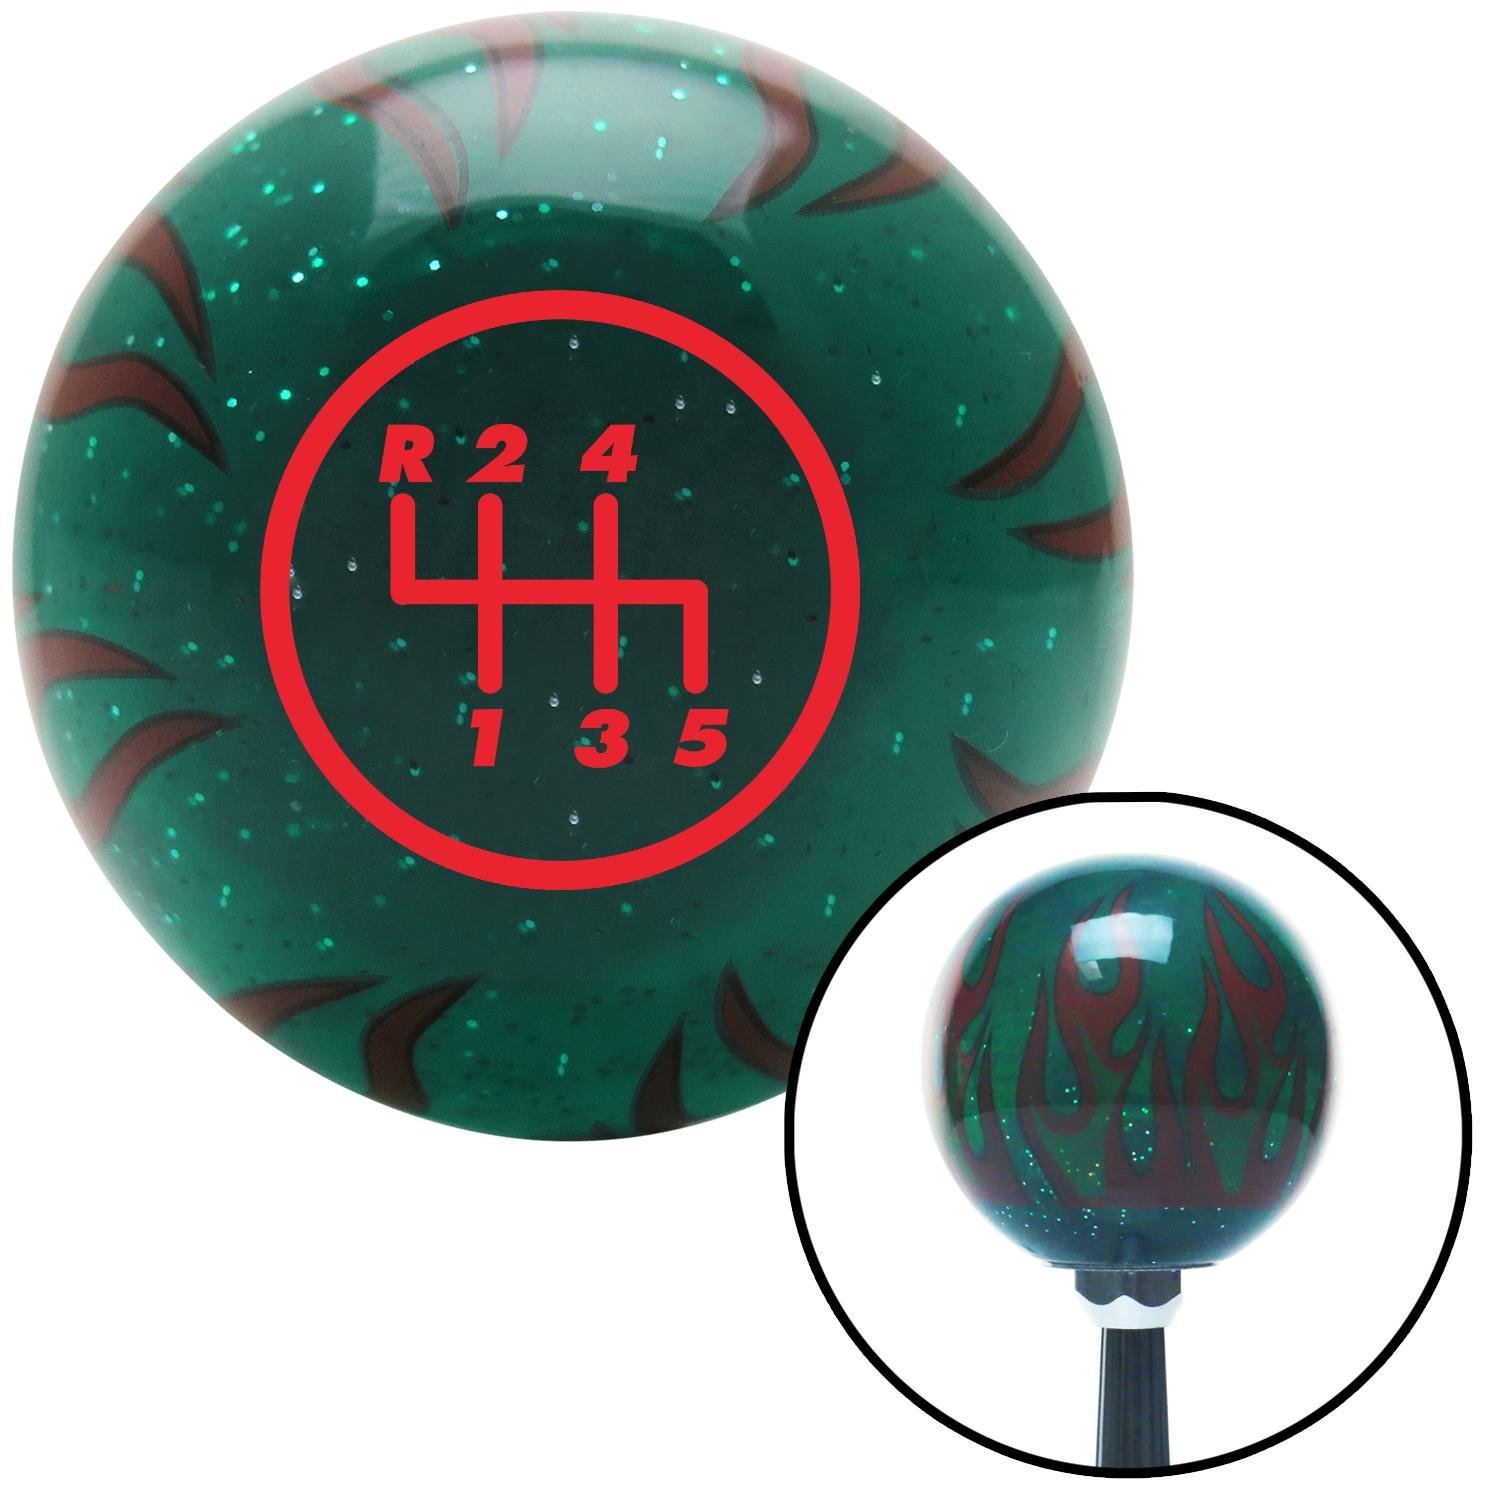 American Shifter 260341 Green Flame Metal Flake Shift Knob with M16 x 1.5 Insert Red 5 Speed Shift Pattern - 5RUL